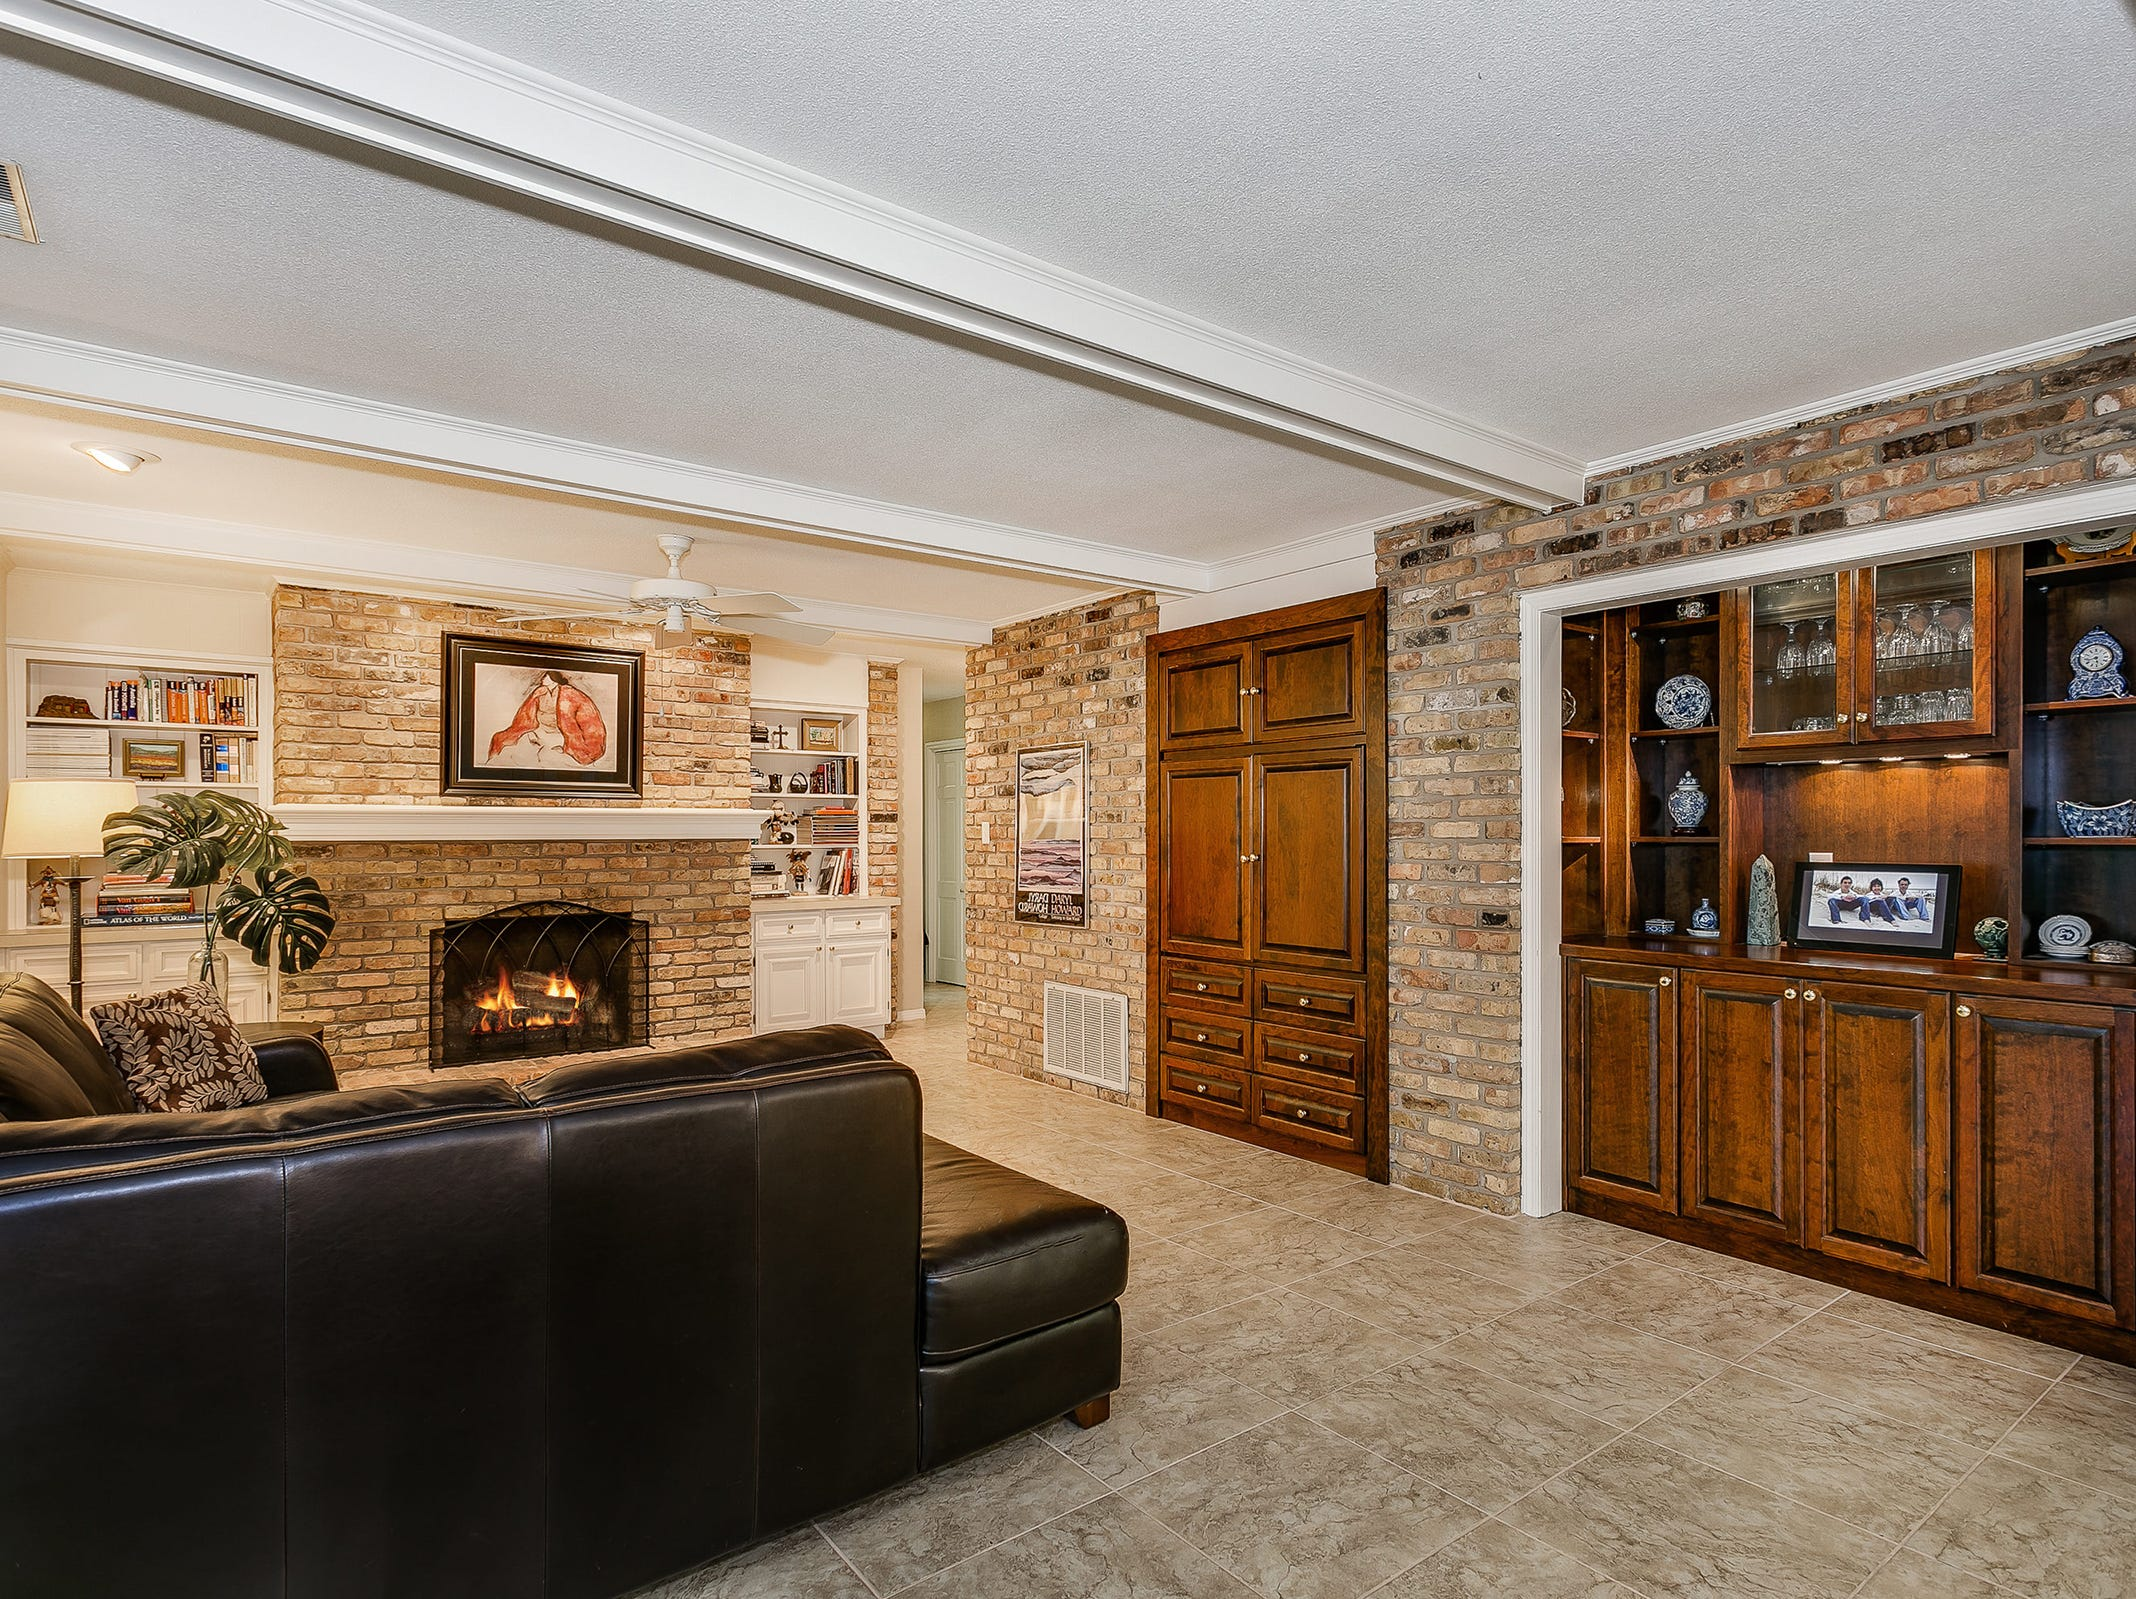 2700 Endor RoadThe spacious family room with a fireplace.